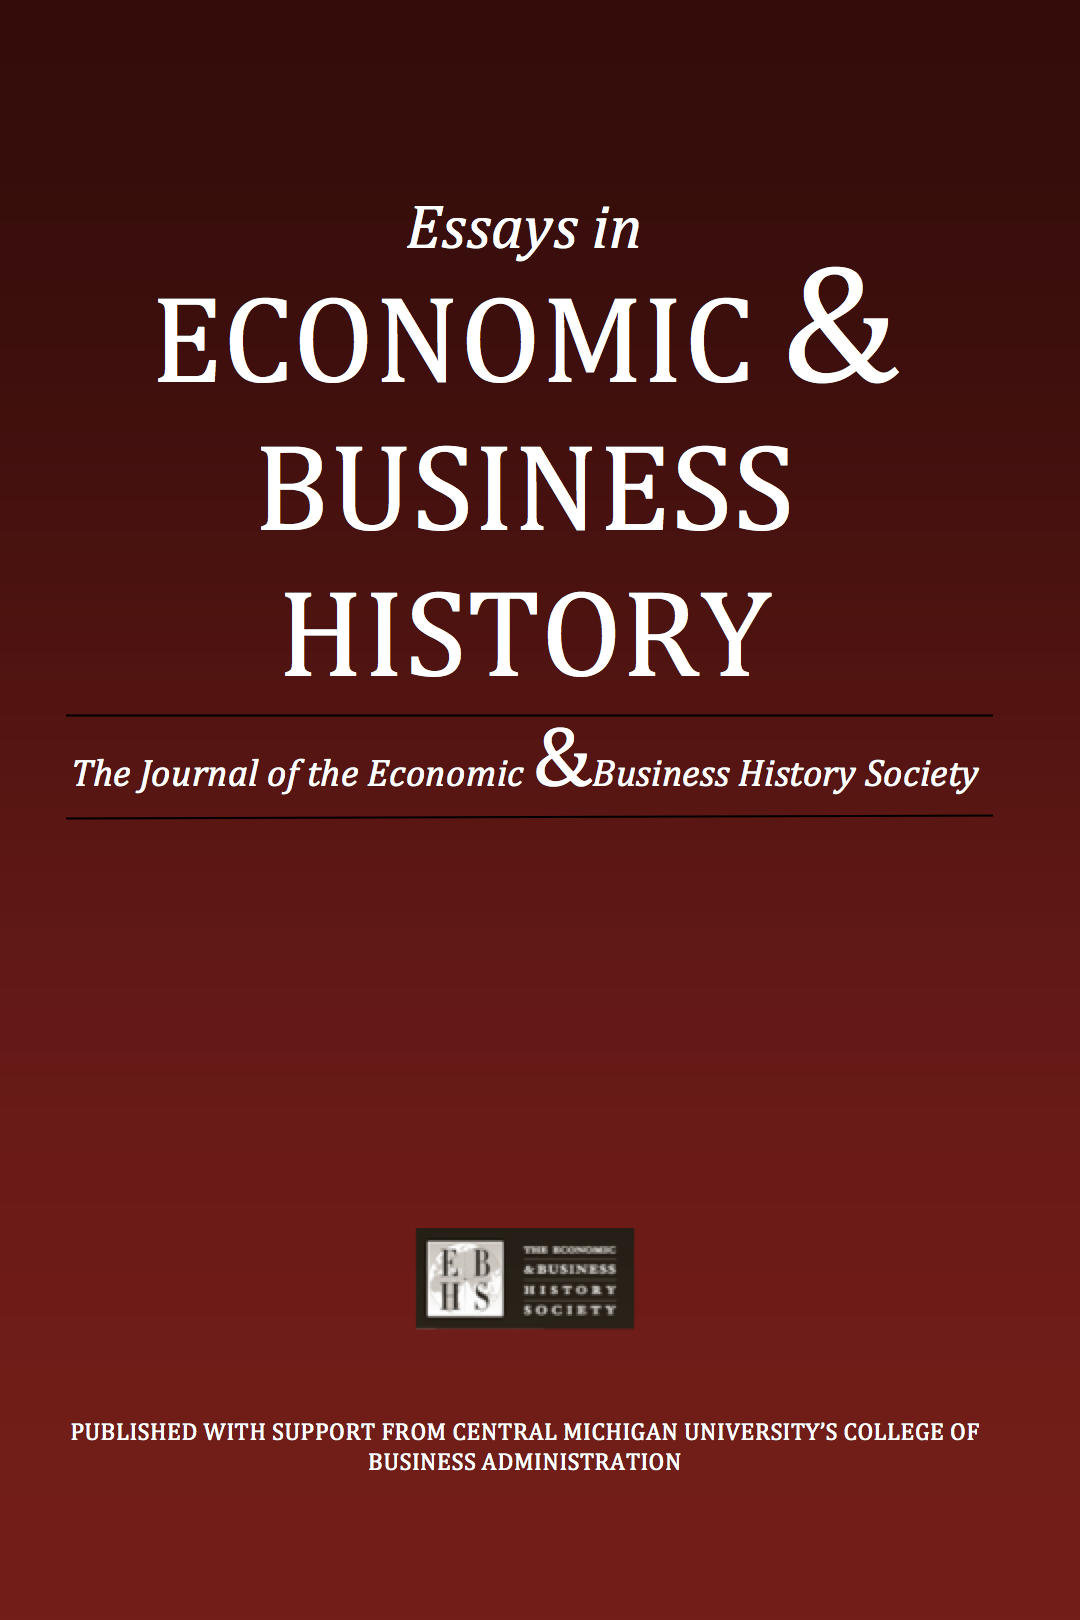 essays economic business history journal Description: history of economic ideas is a new international series of quaderni di storia dell'economia politica, a journal founded in 1983 to promote collaboration between scholars who share an historical approach to the major issues, the various revolutions which have left their mark on economics and the spread of economic ideas beyond the narrow circle of specialists.